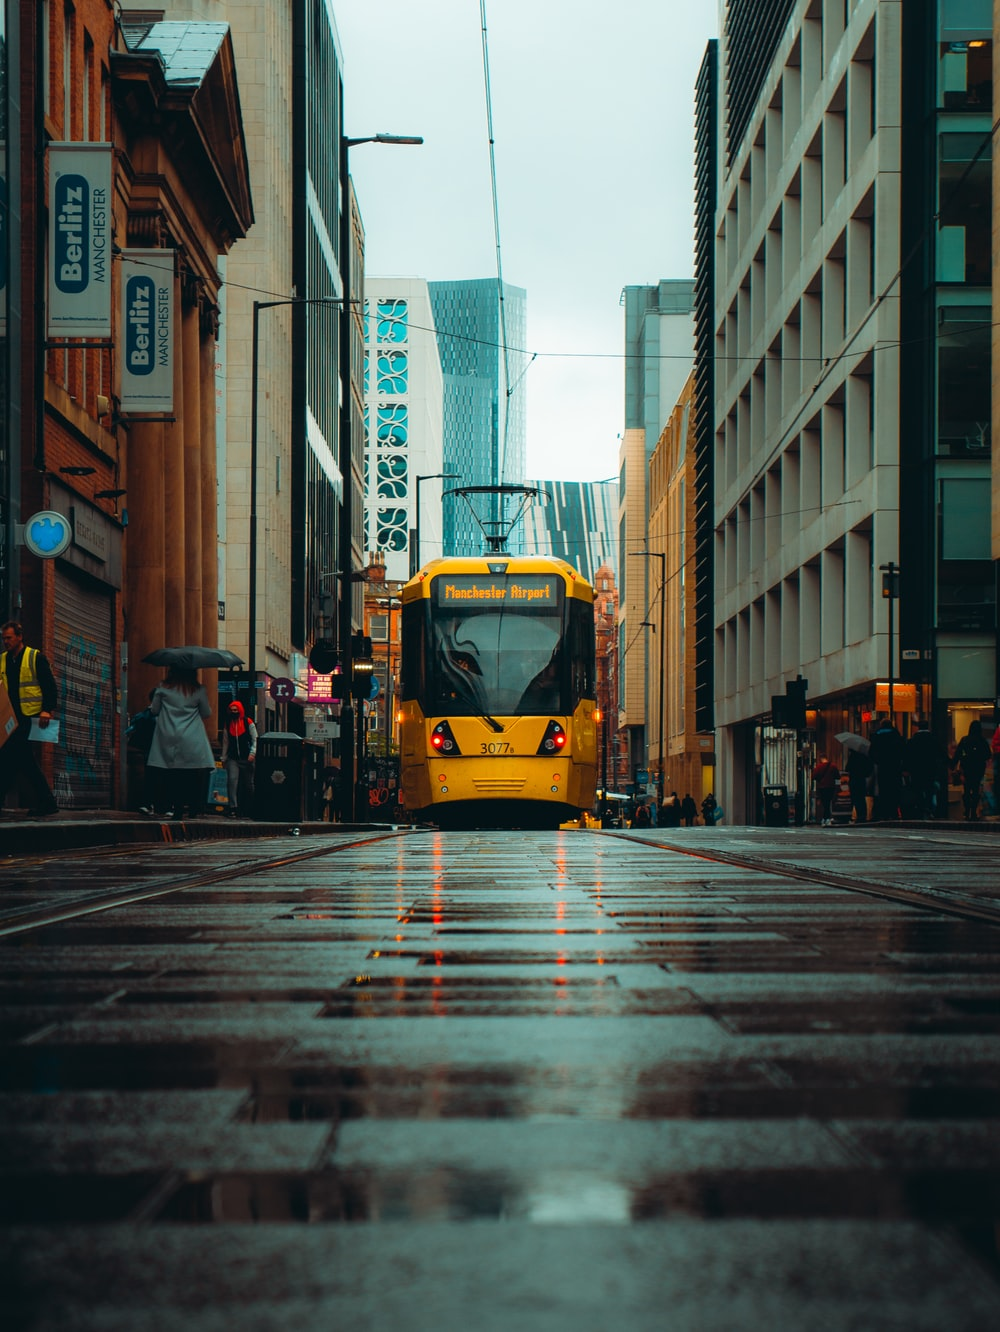 yellow bus on the street during daytime